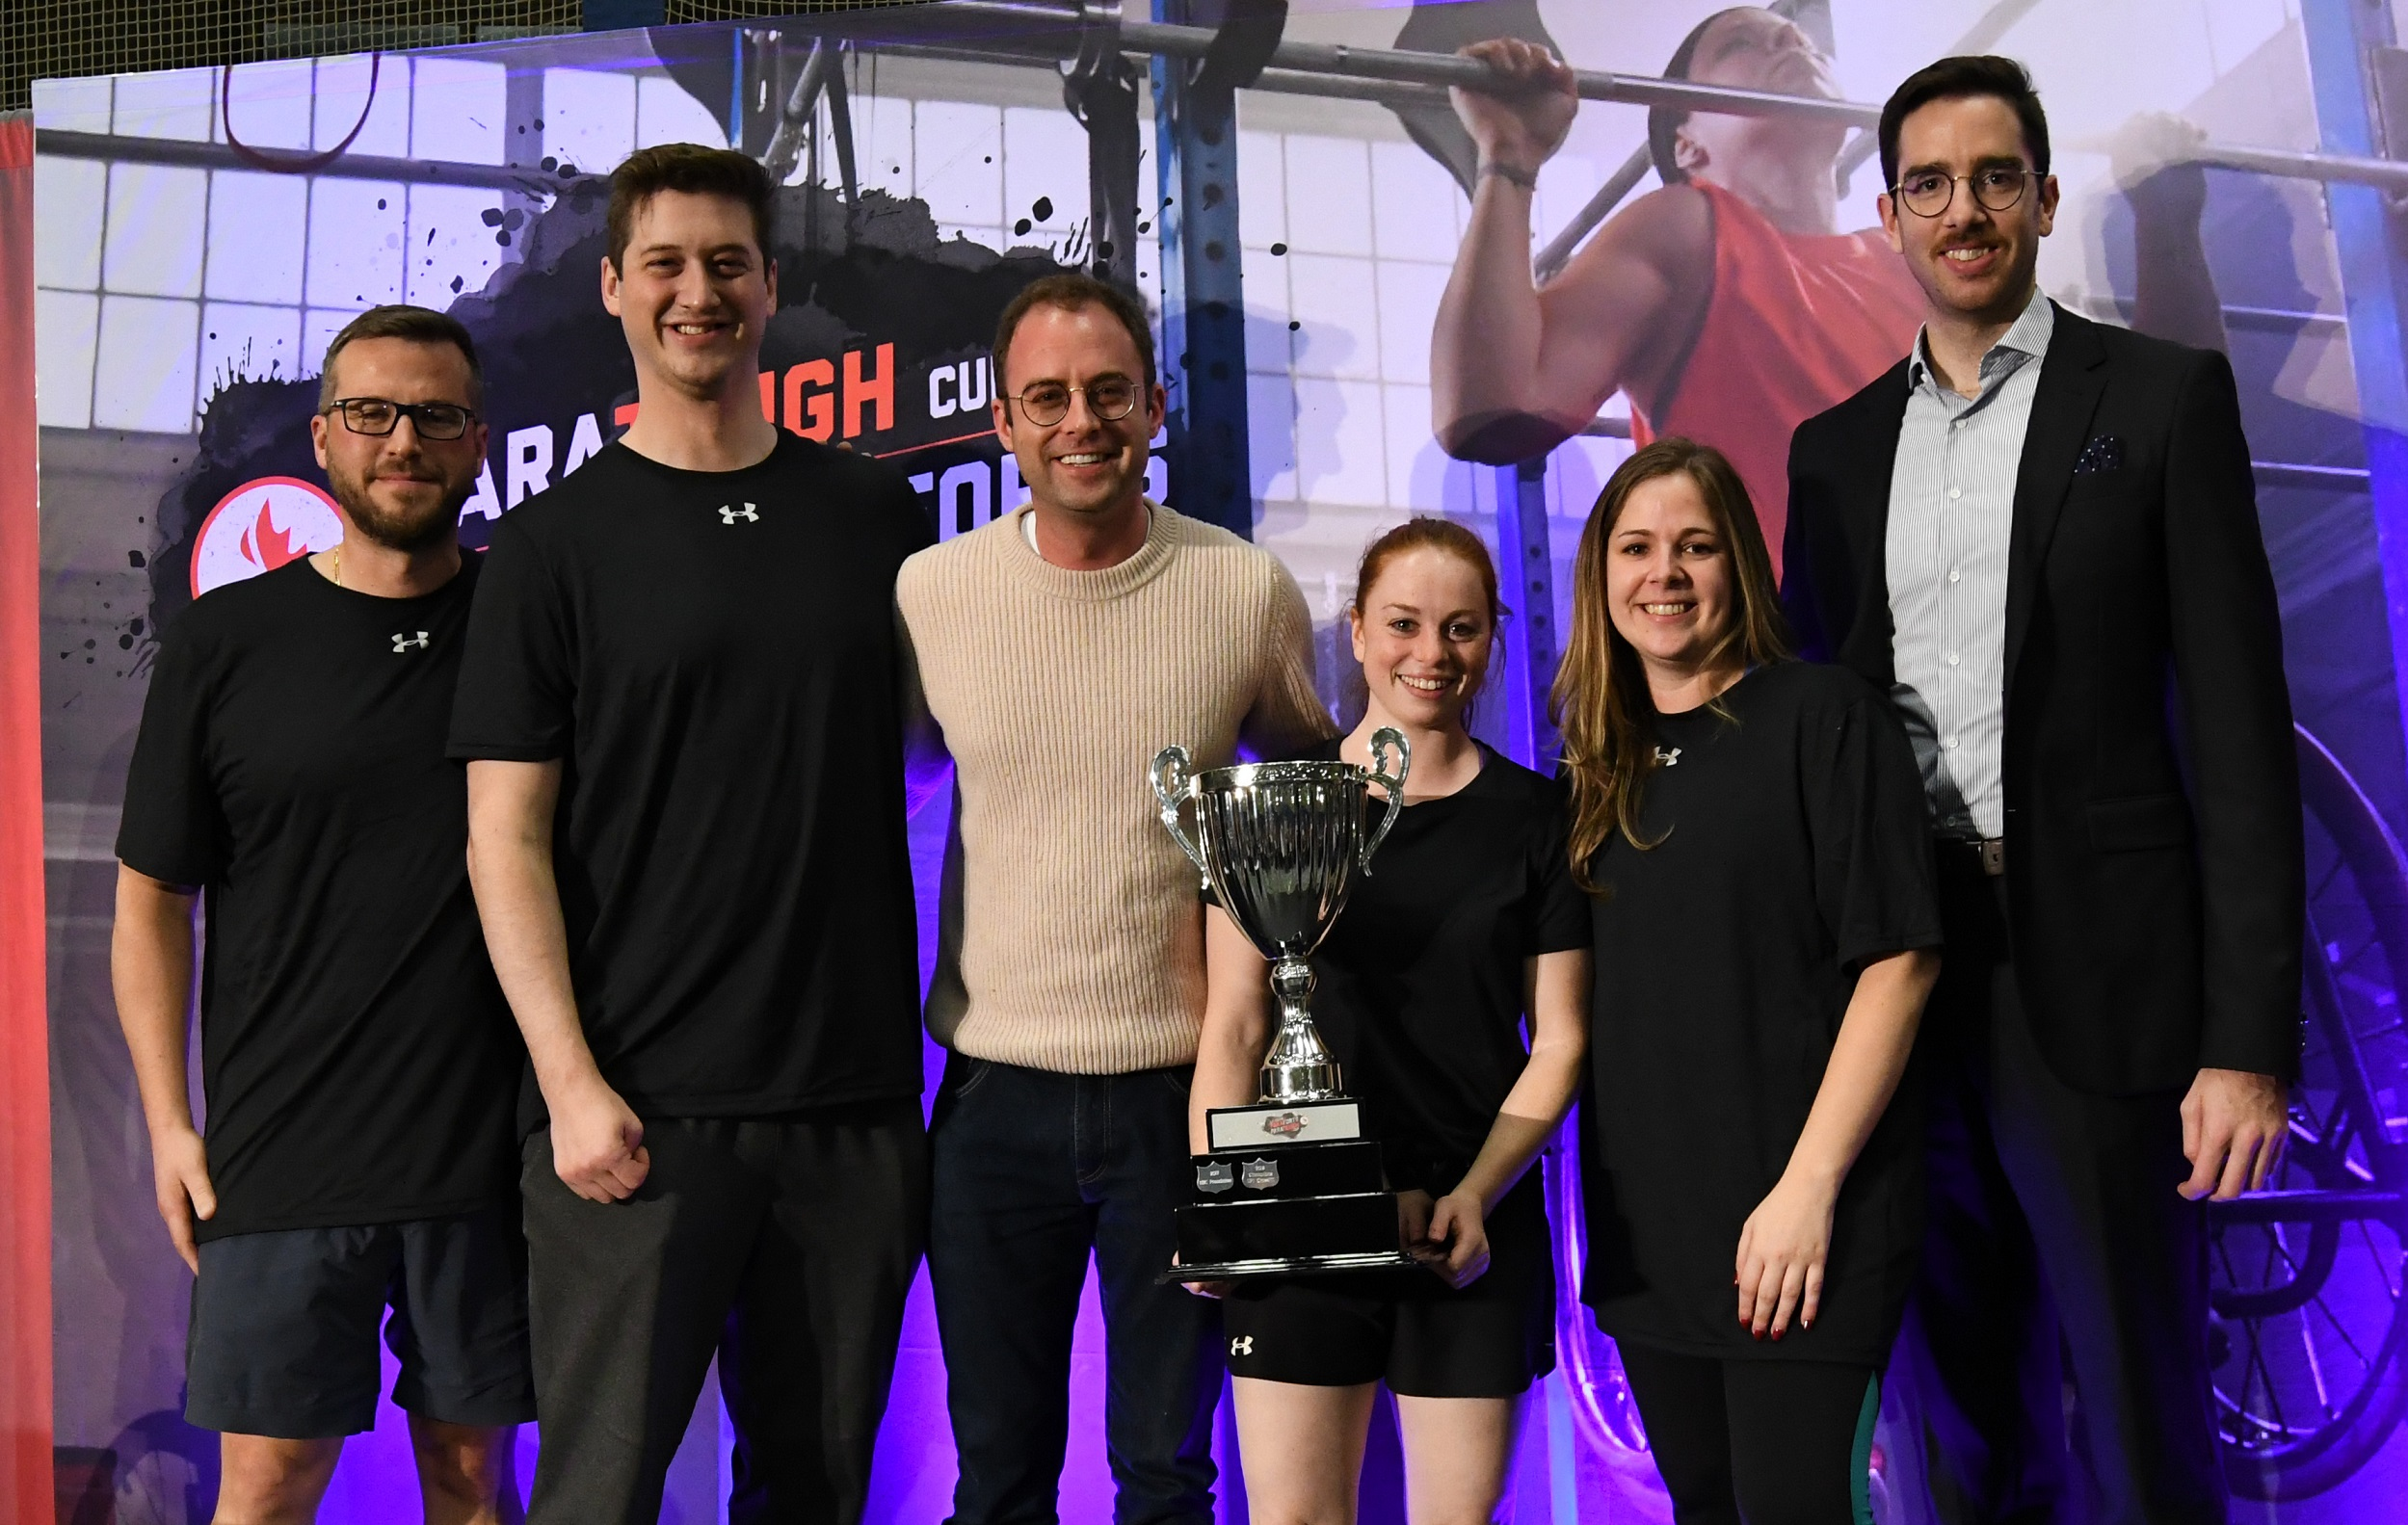 Team Fasken 2 with the ParaTough Cup trophy in Montreal 2019.